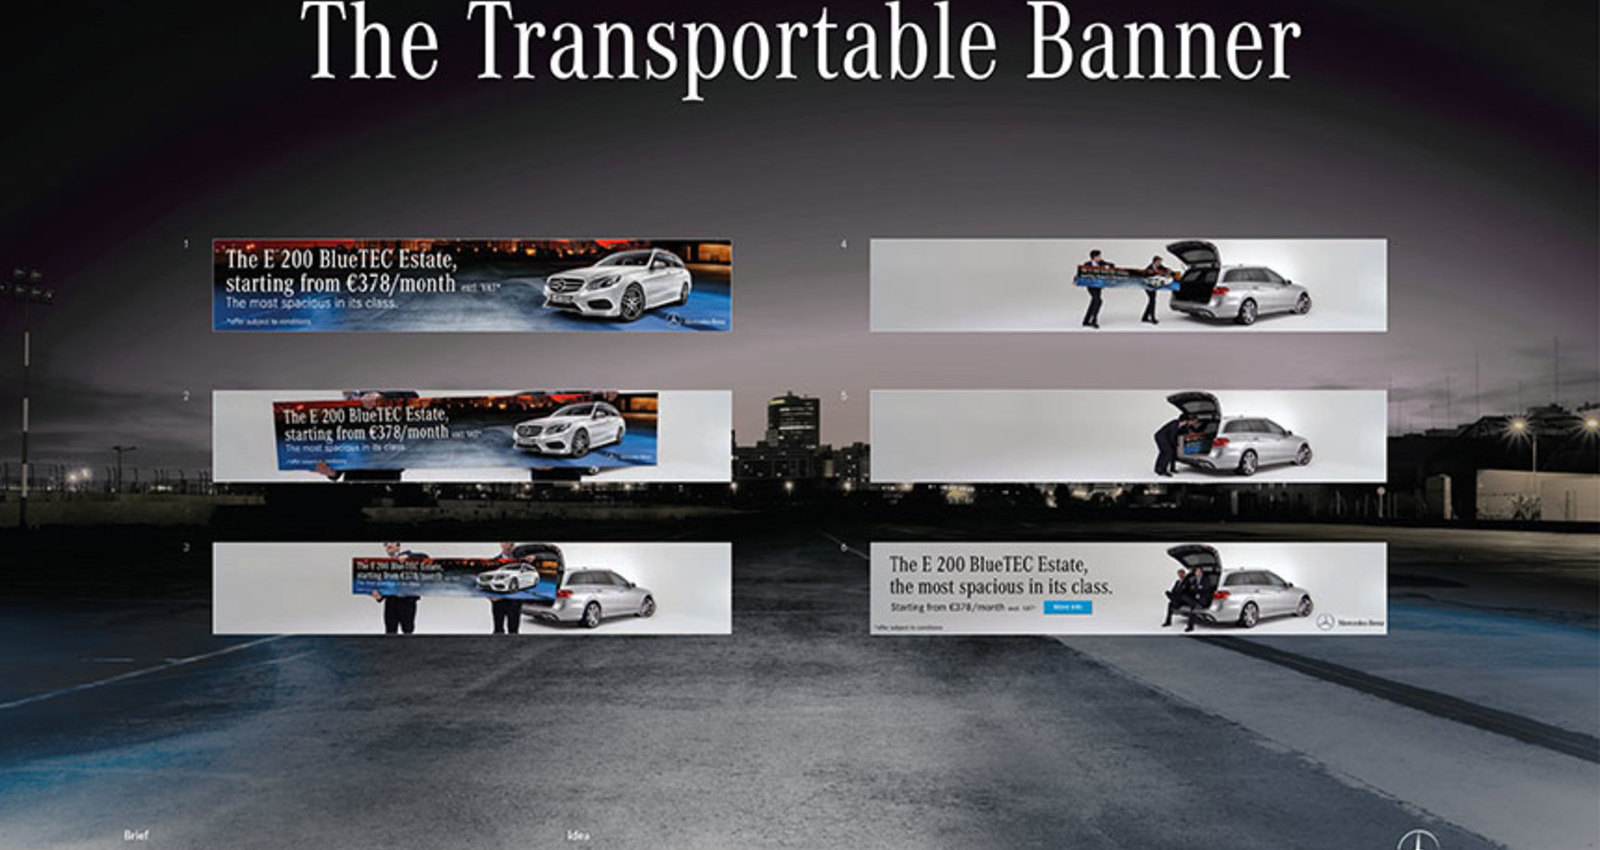 The Transportable Banner